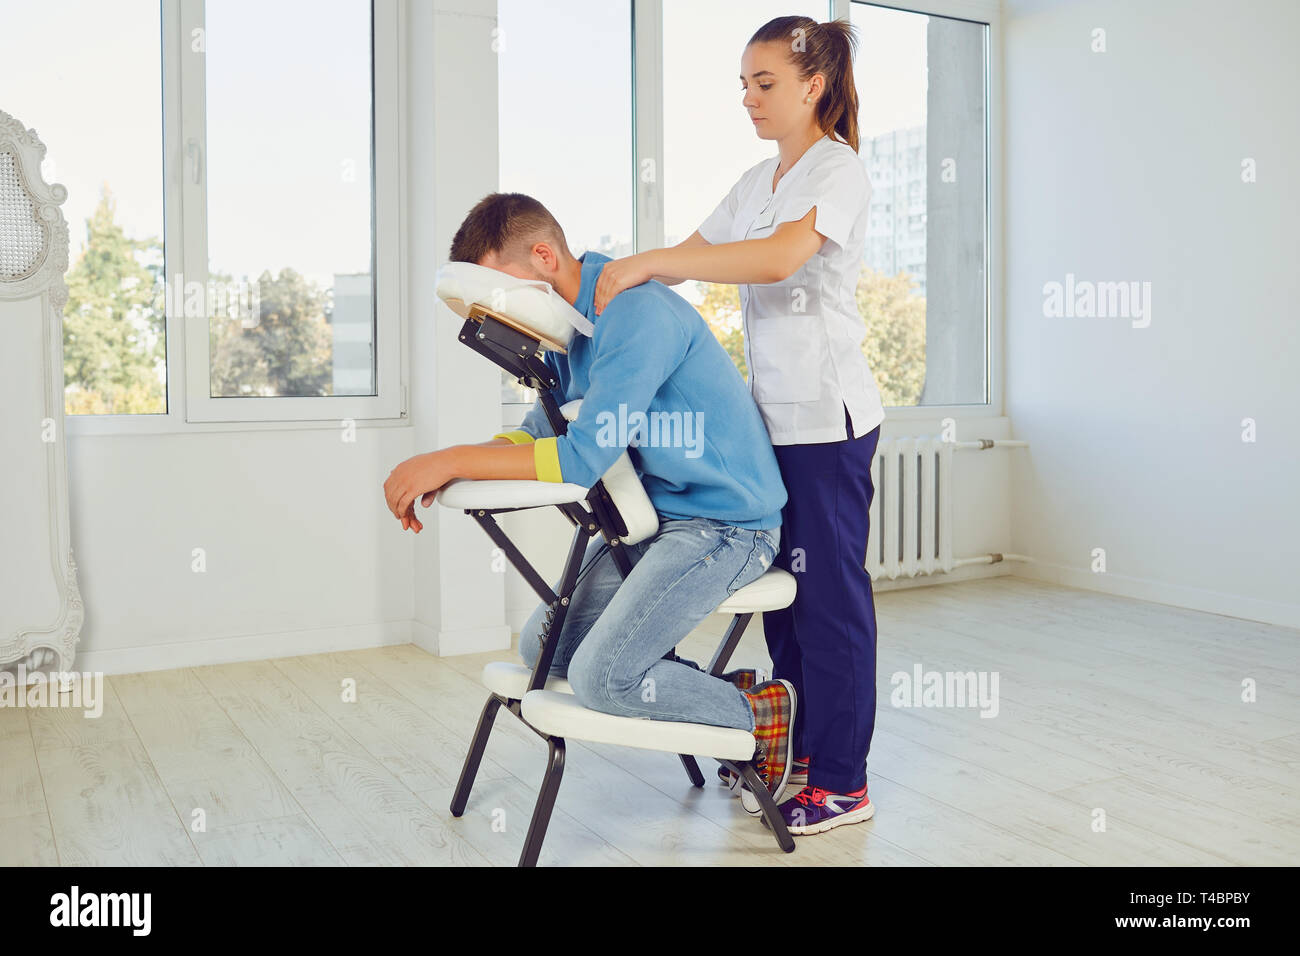 Woman massaging man in special stand - Stock Image